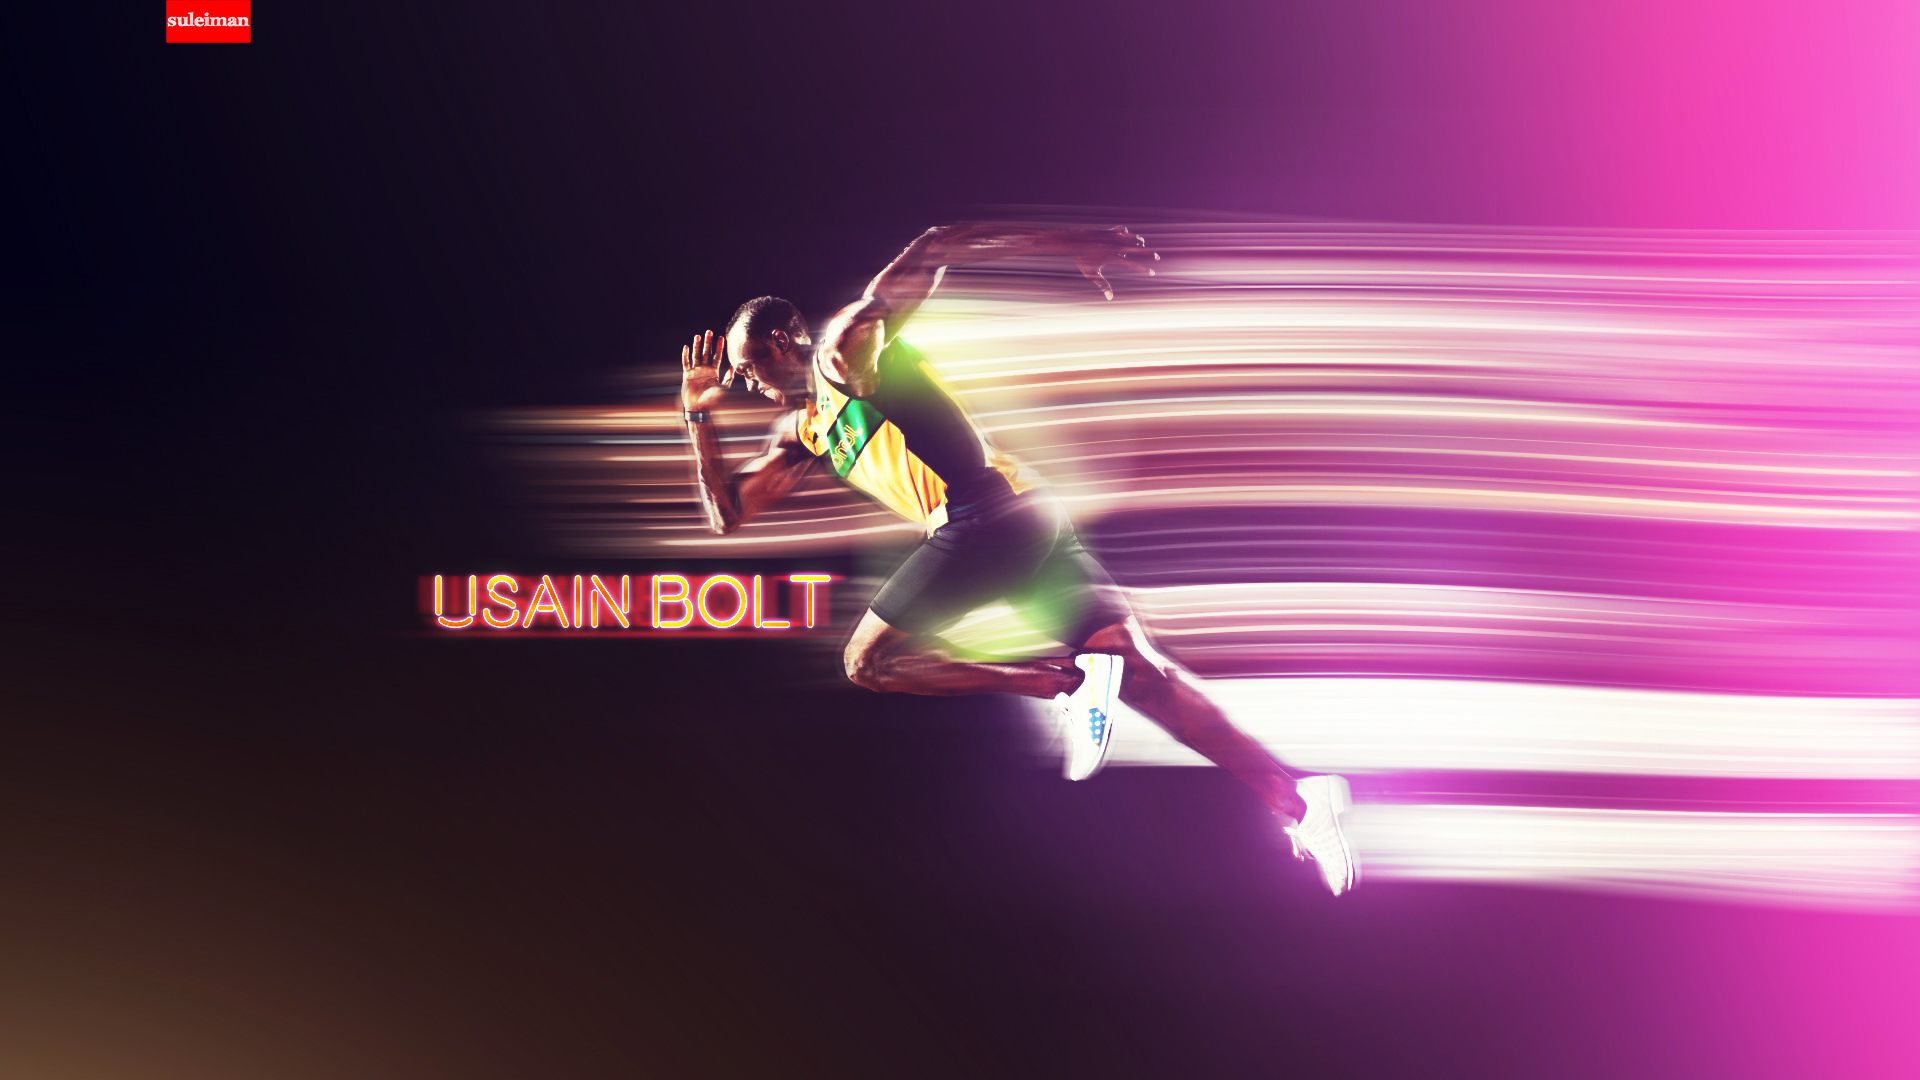 Usain Bolt Wallpaper For Windows